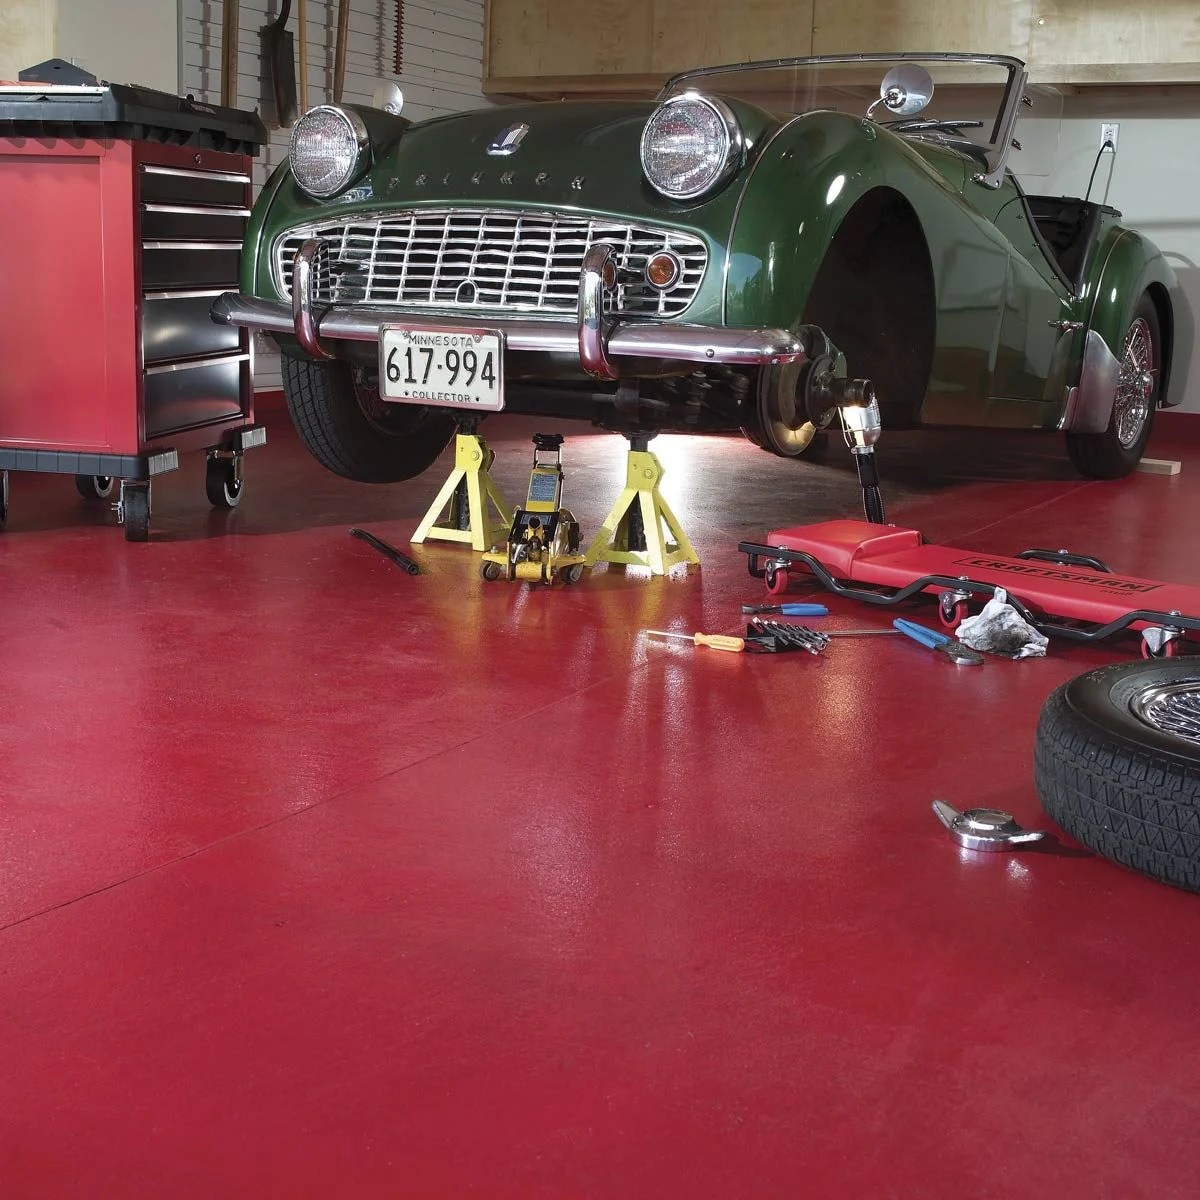 Garage Floor Epoxy Steps How To Apply Epoxy Flooring To Your Garage Family Handyman The